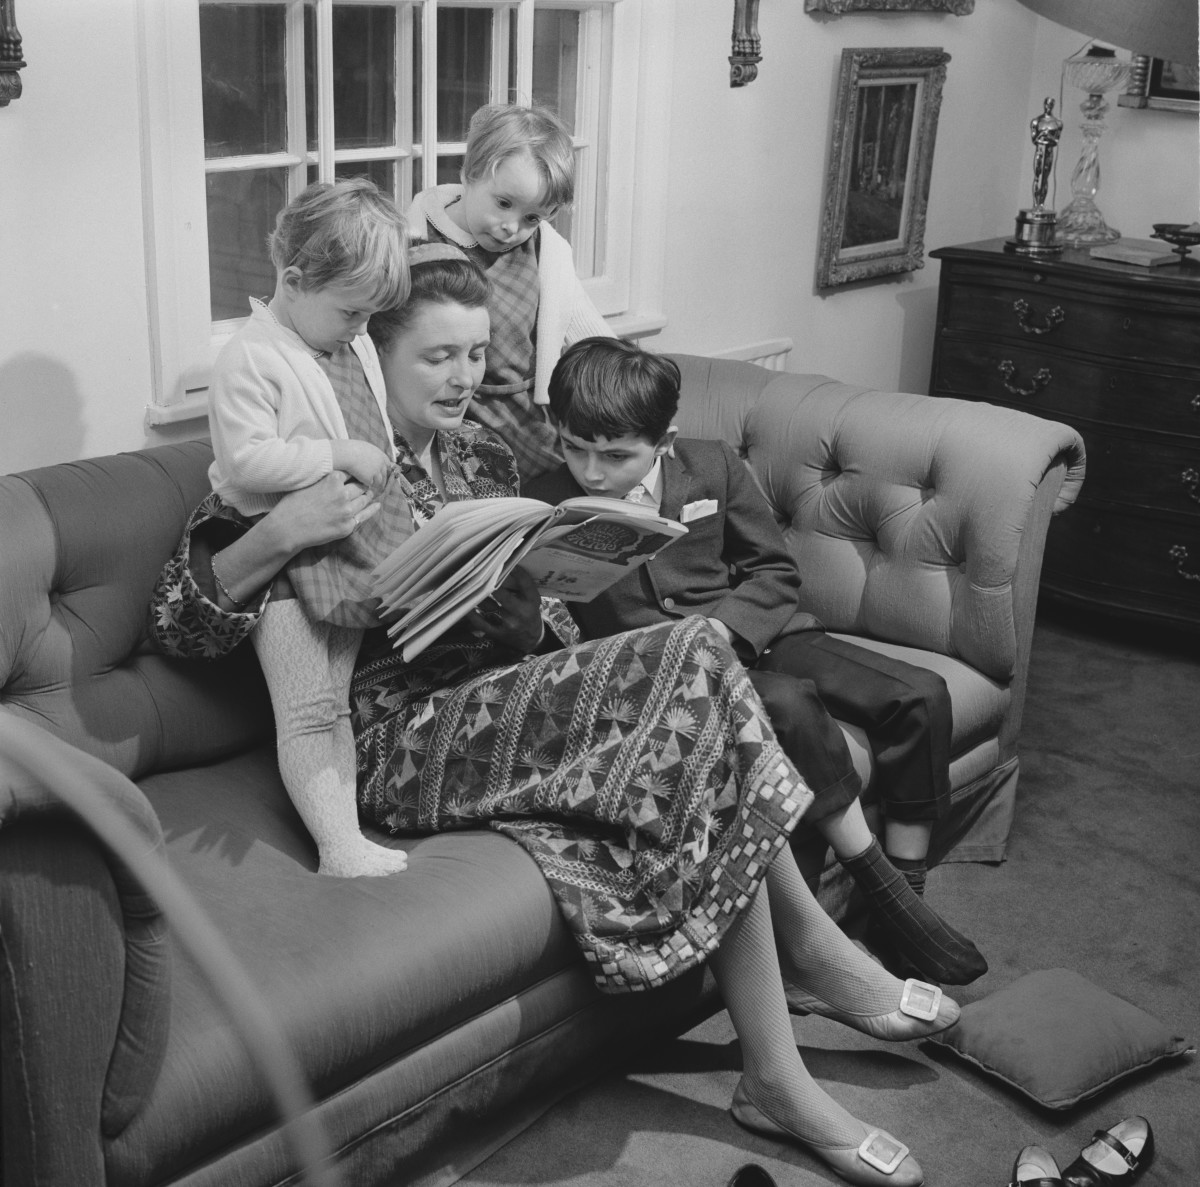 Roald Dahl's wife, Patricia Neal, reading Charlie and the Chocolate Factory with their children Lucy, Ophelia and Theo in January 1968.